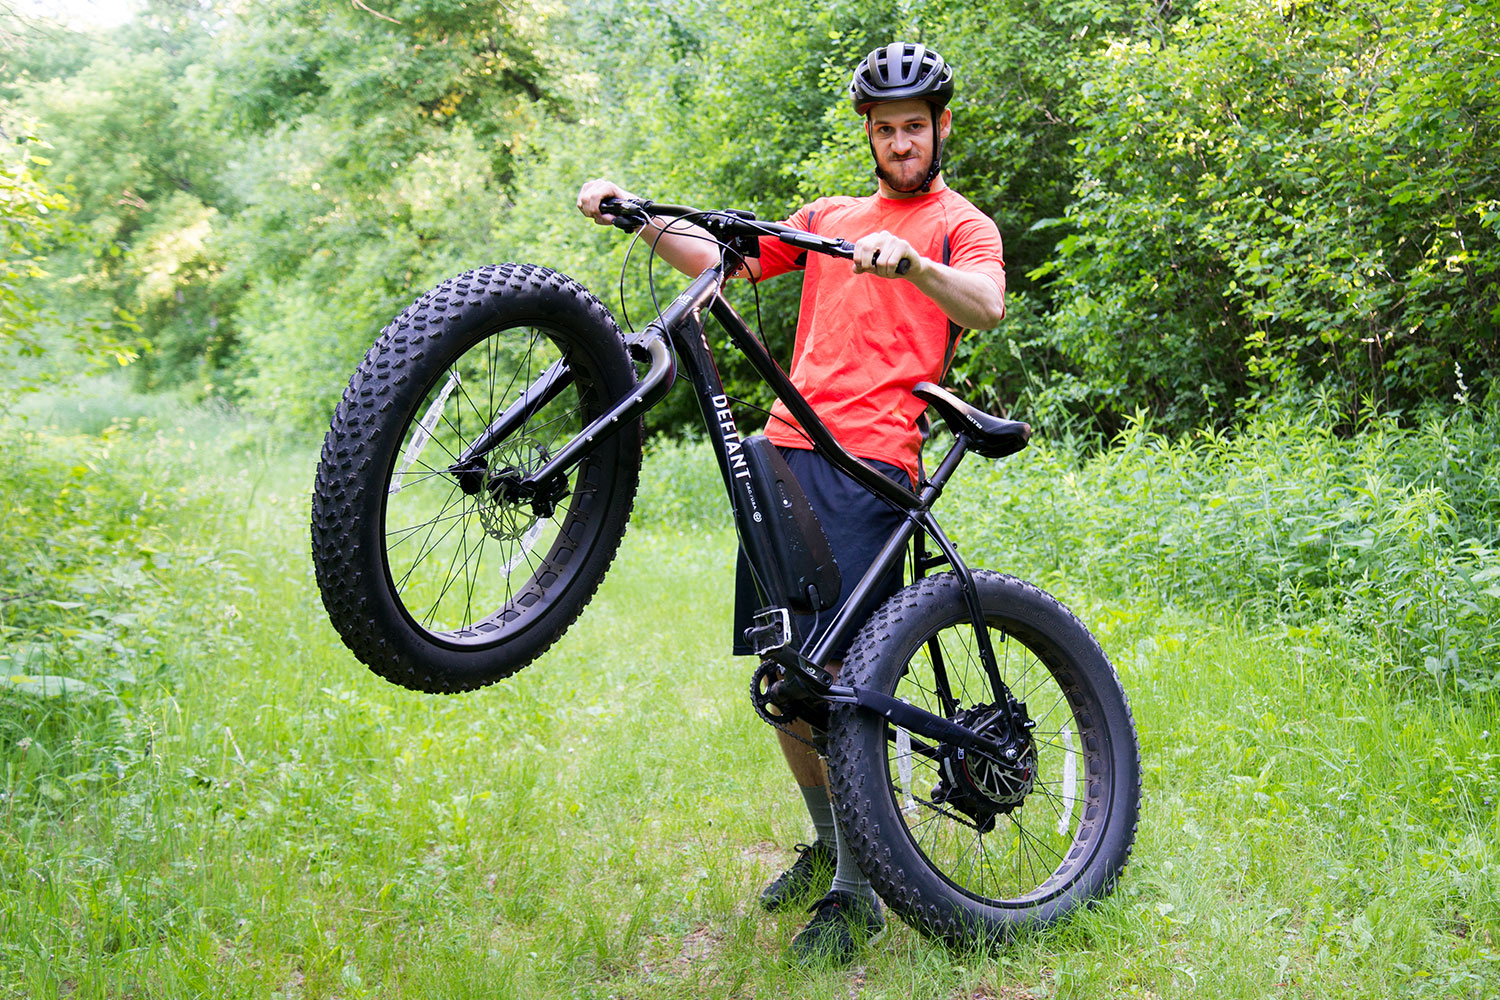 GearJunkie — First Look: Powerful Pedaling With Defiant 'Fat Electric' Bike